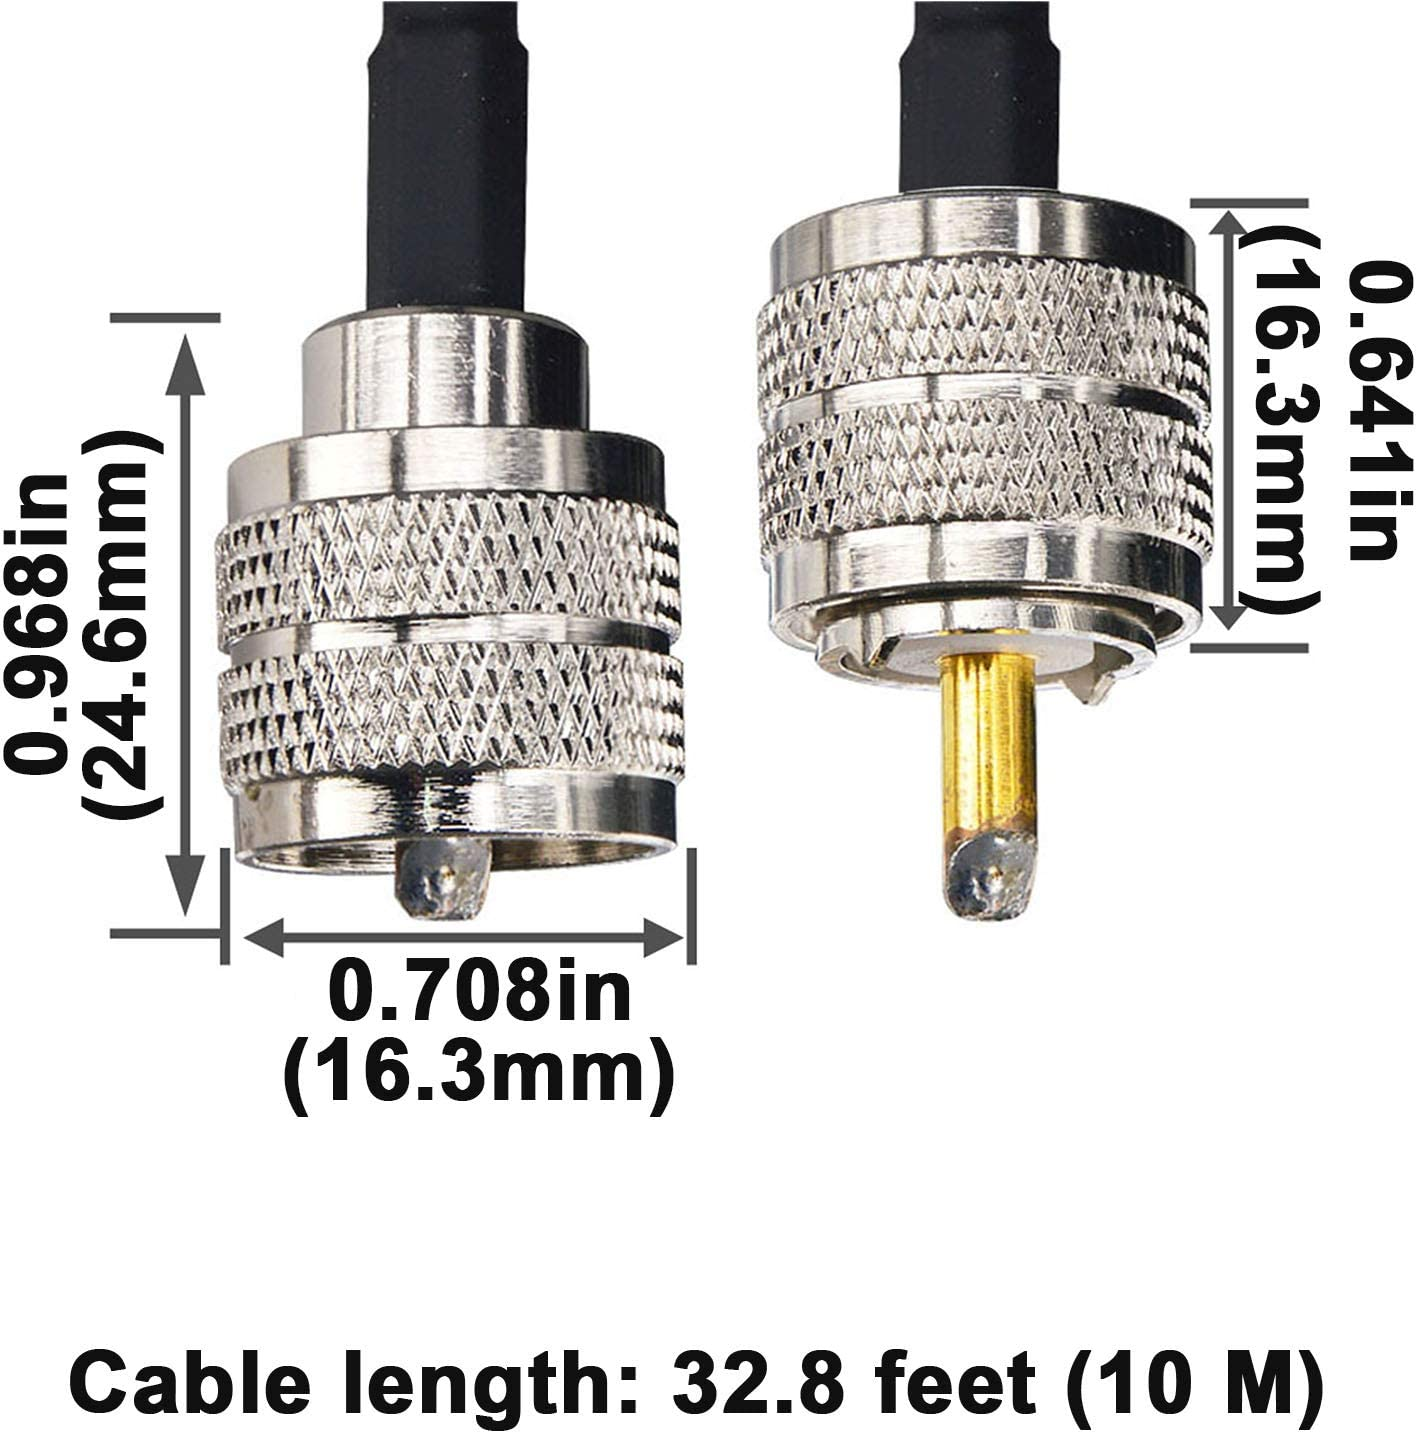 65.6 Feet BOOBRIE UHF Cable RG58//U Coaxial Cable PL259 Adapter UHF Male to UHF Male Radio Antenna Cable Ham Radio Coaxial Cable Low Loss CB Coax Cable for CB Ham Radio//Antenna//Broadcast//Telecom